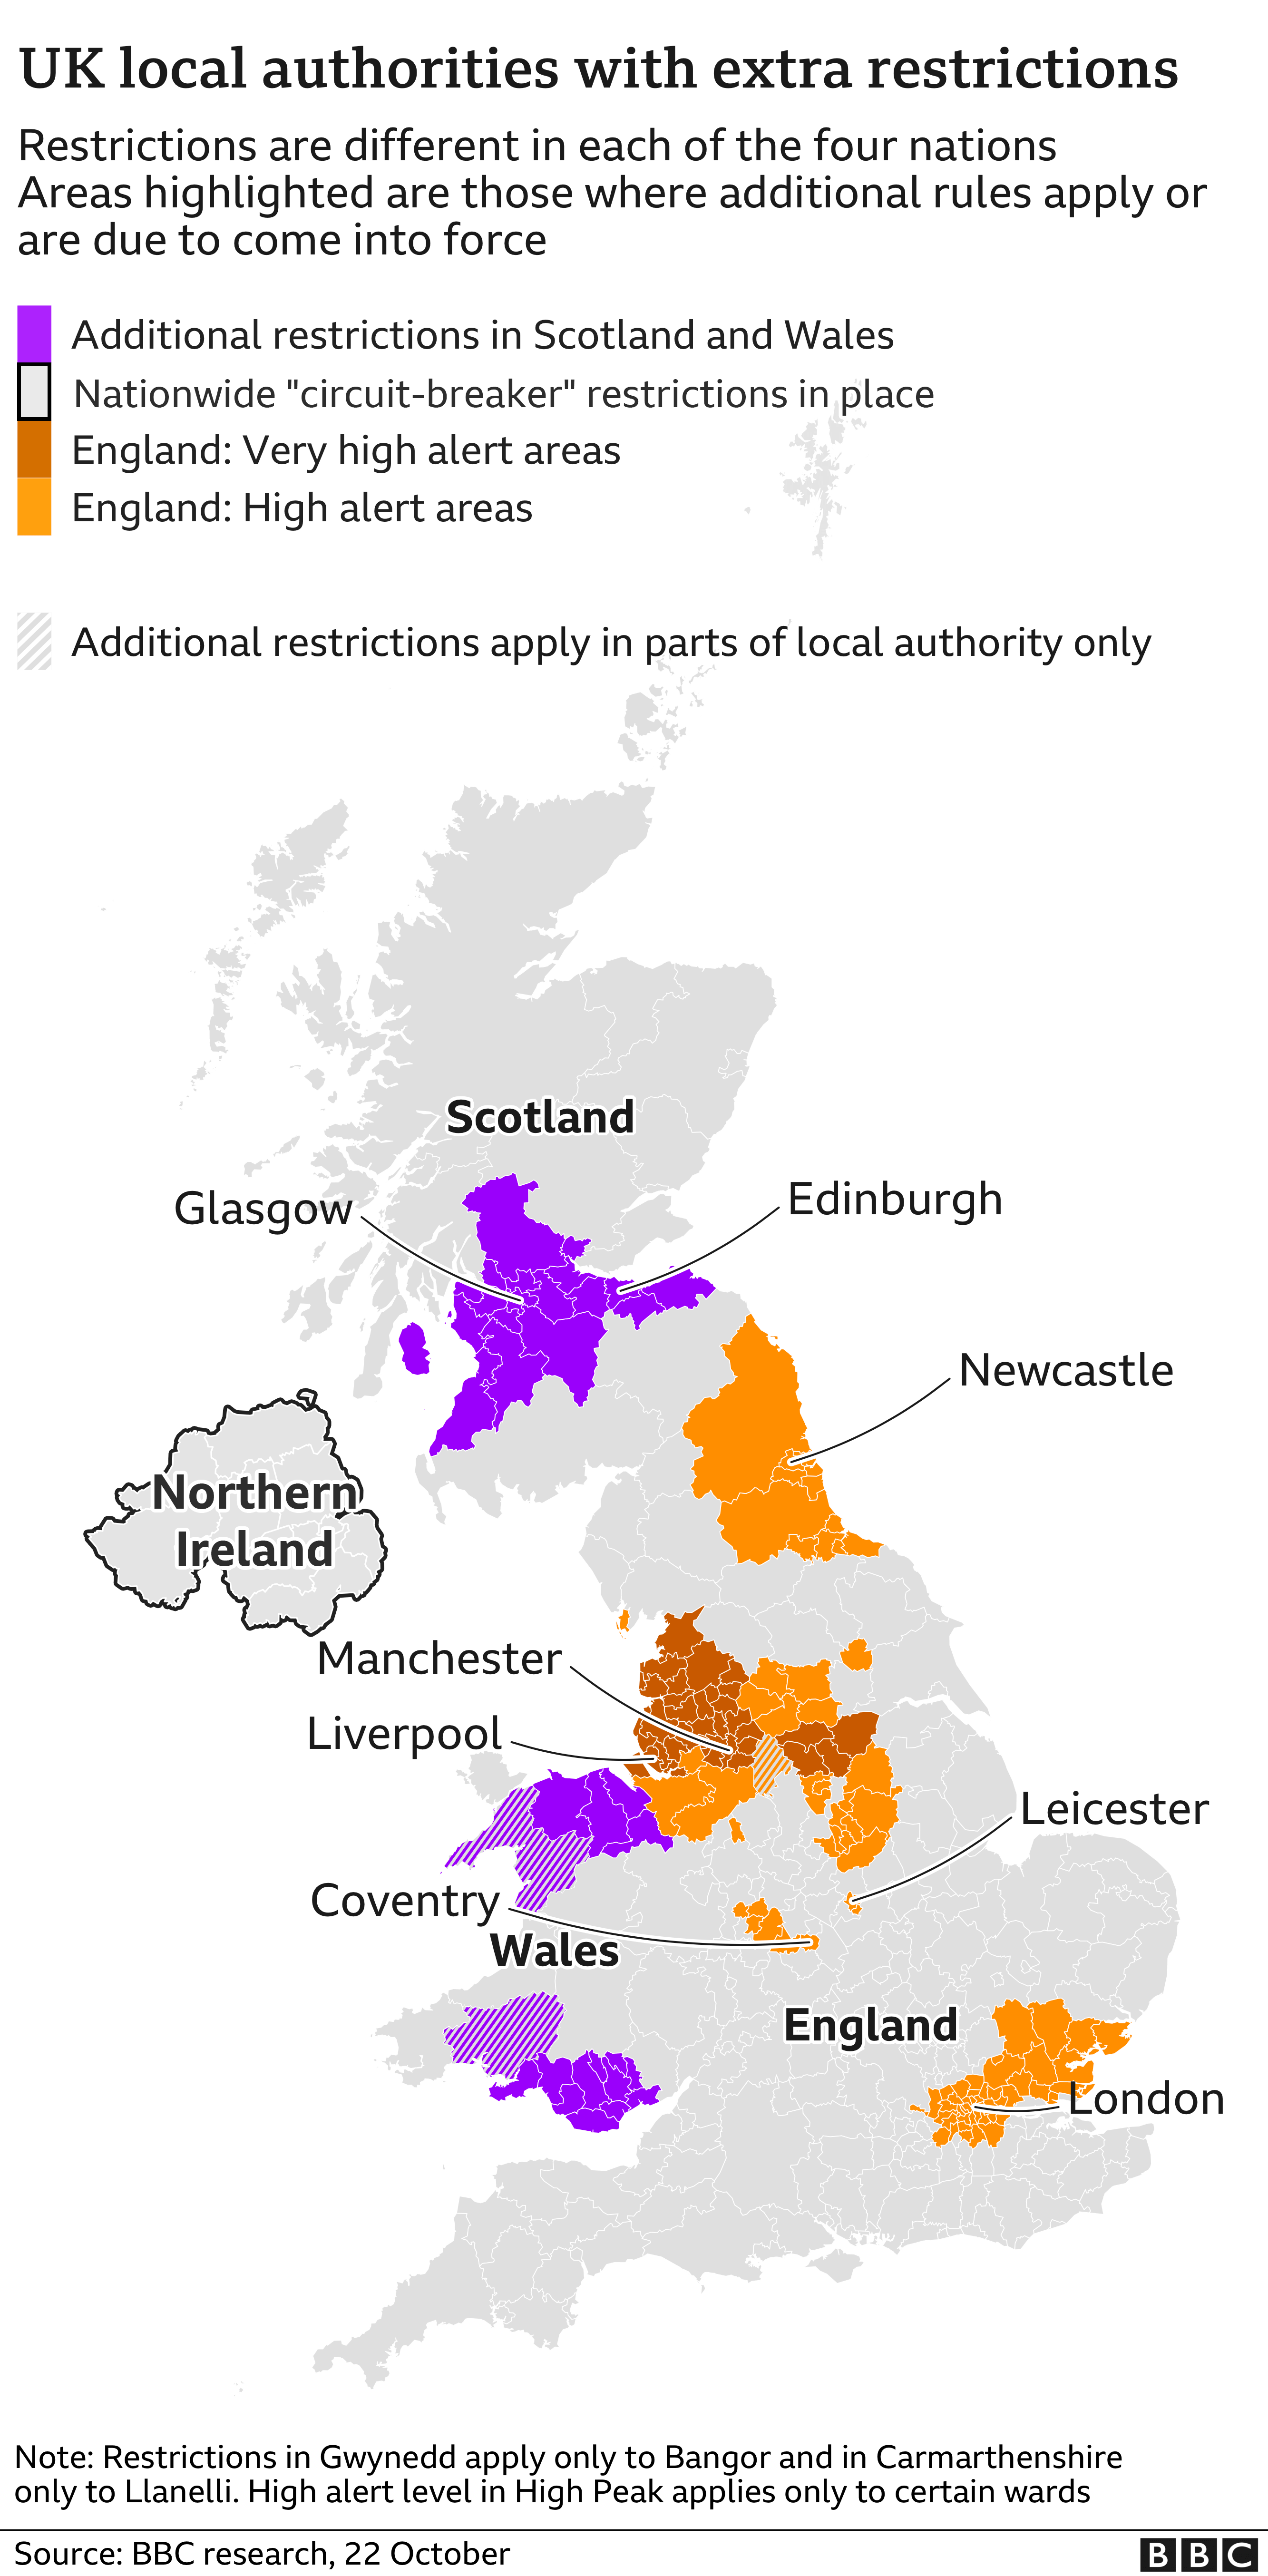 Map of UK shows where extra restrictions have been imposed/due to come into force